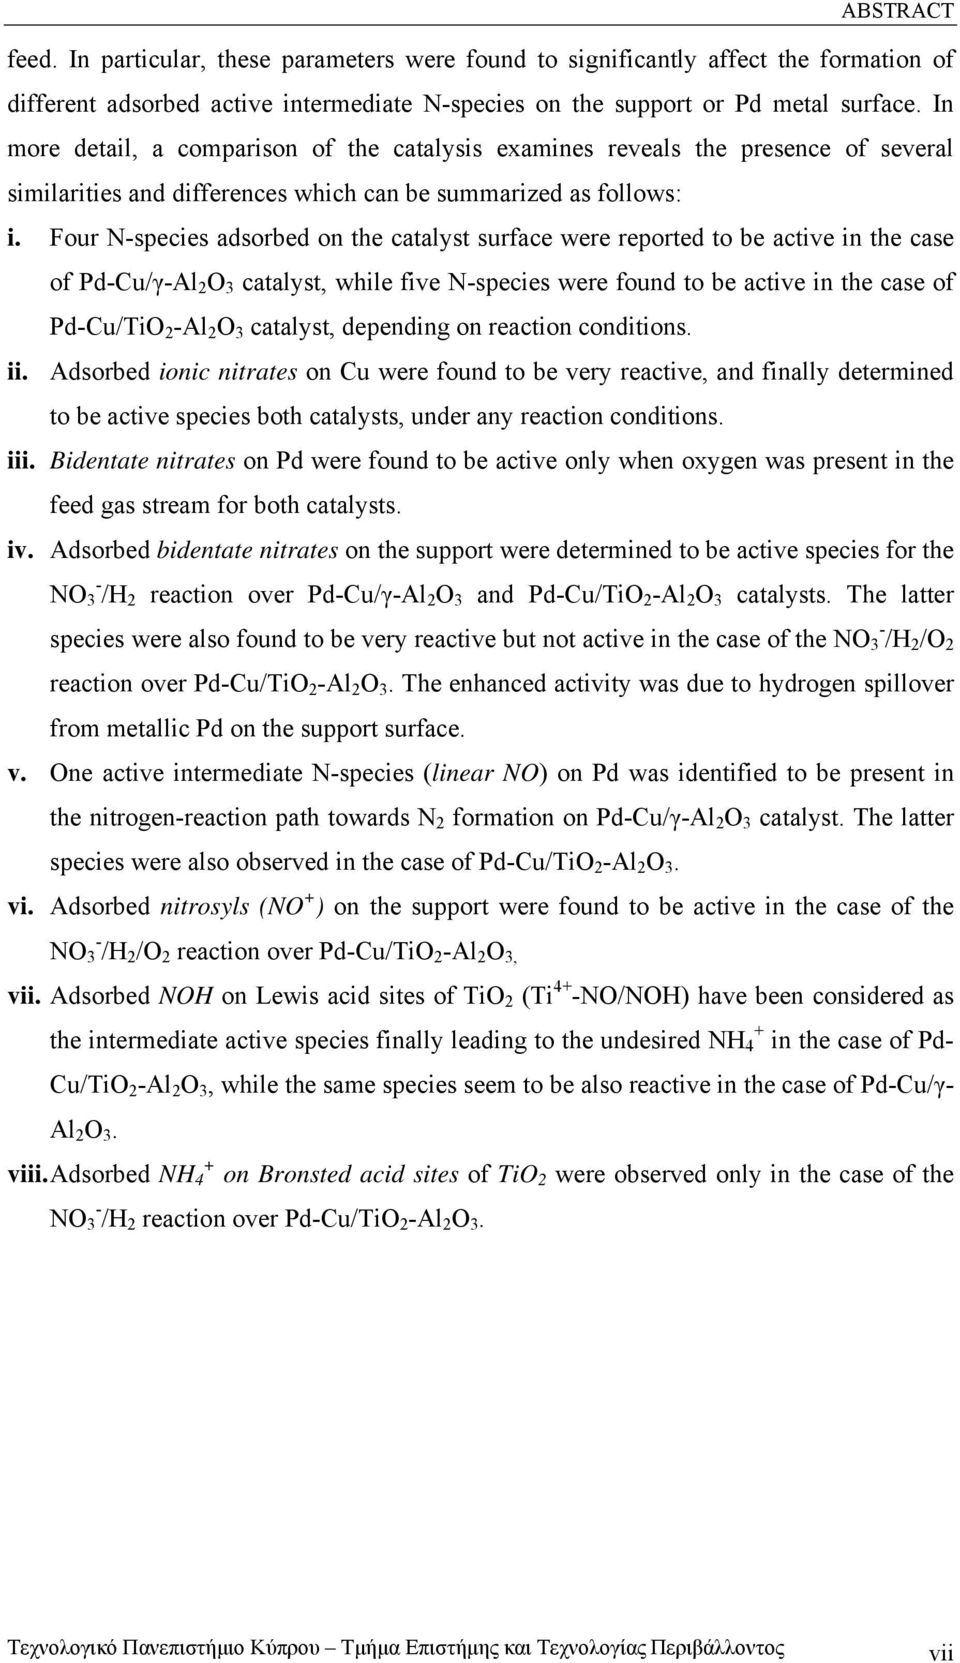 Four Nspecies adsorbed on the catalyst surface were reported to be active in the case of PdCu/γAl 2 O 3 catalyst, while five Nspecies were found to be active in the case of PdCu/TiO 2 Al 2 O 3